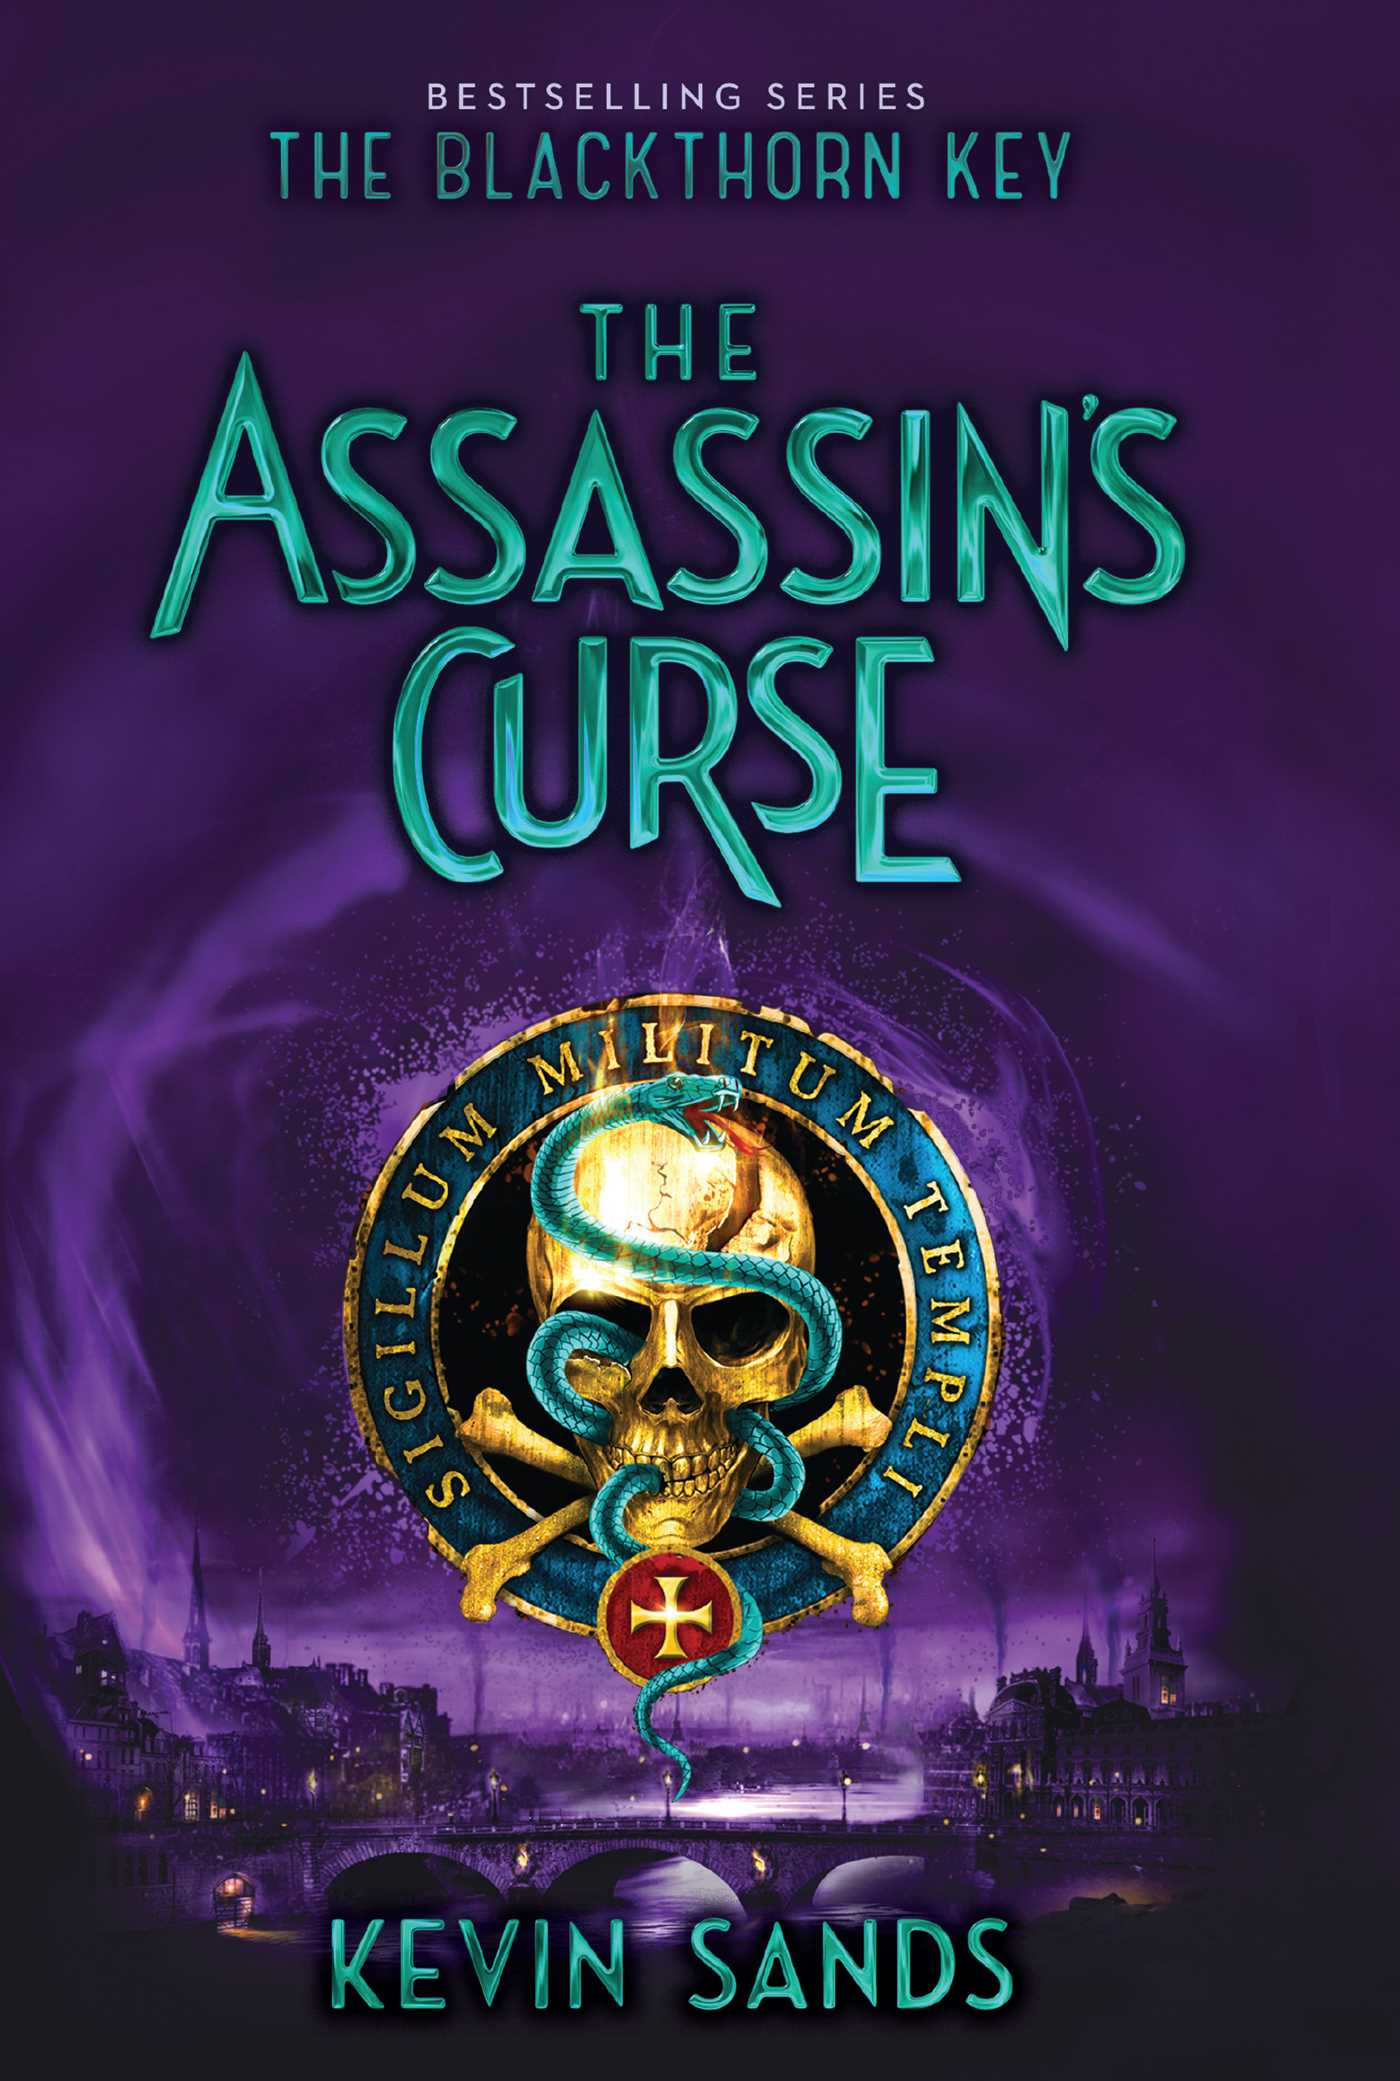 The assassins curse 9781534405257 hr